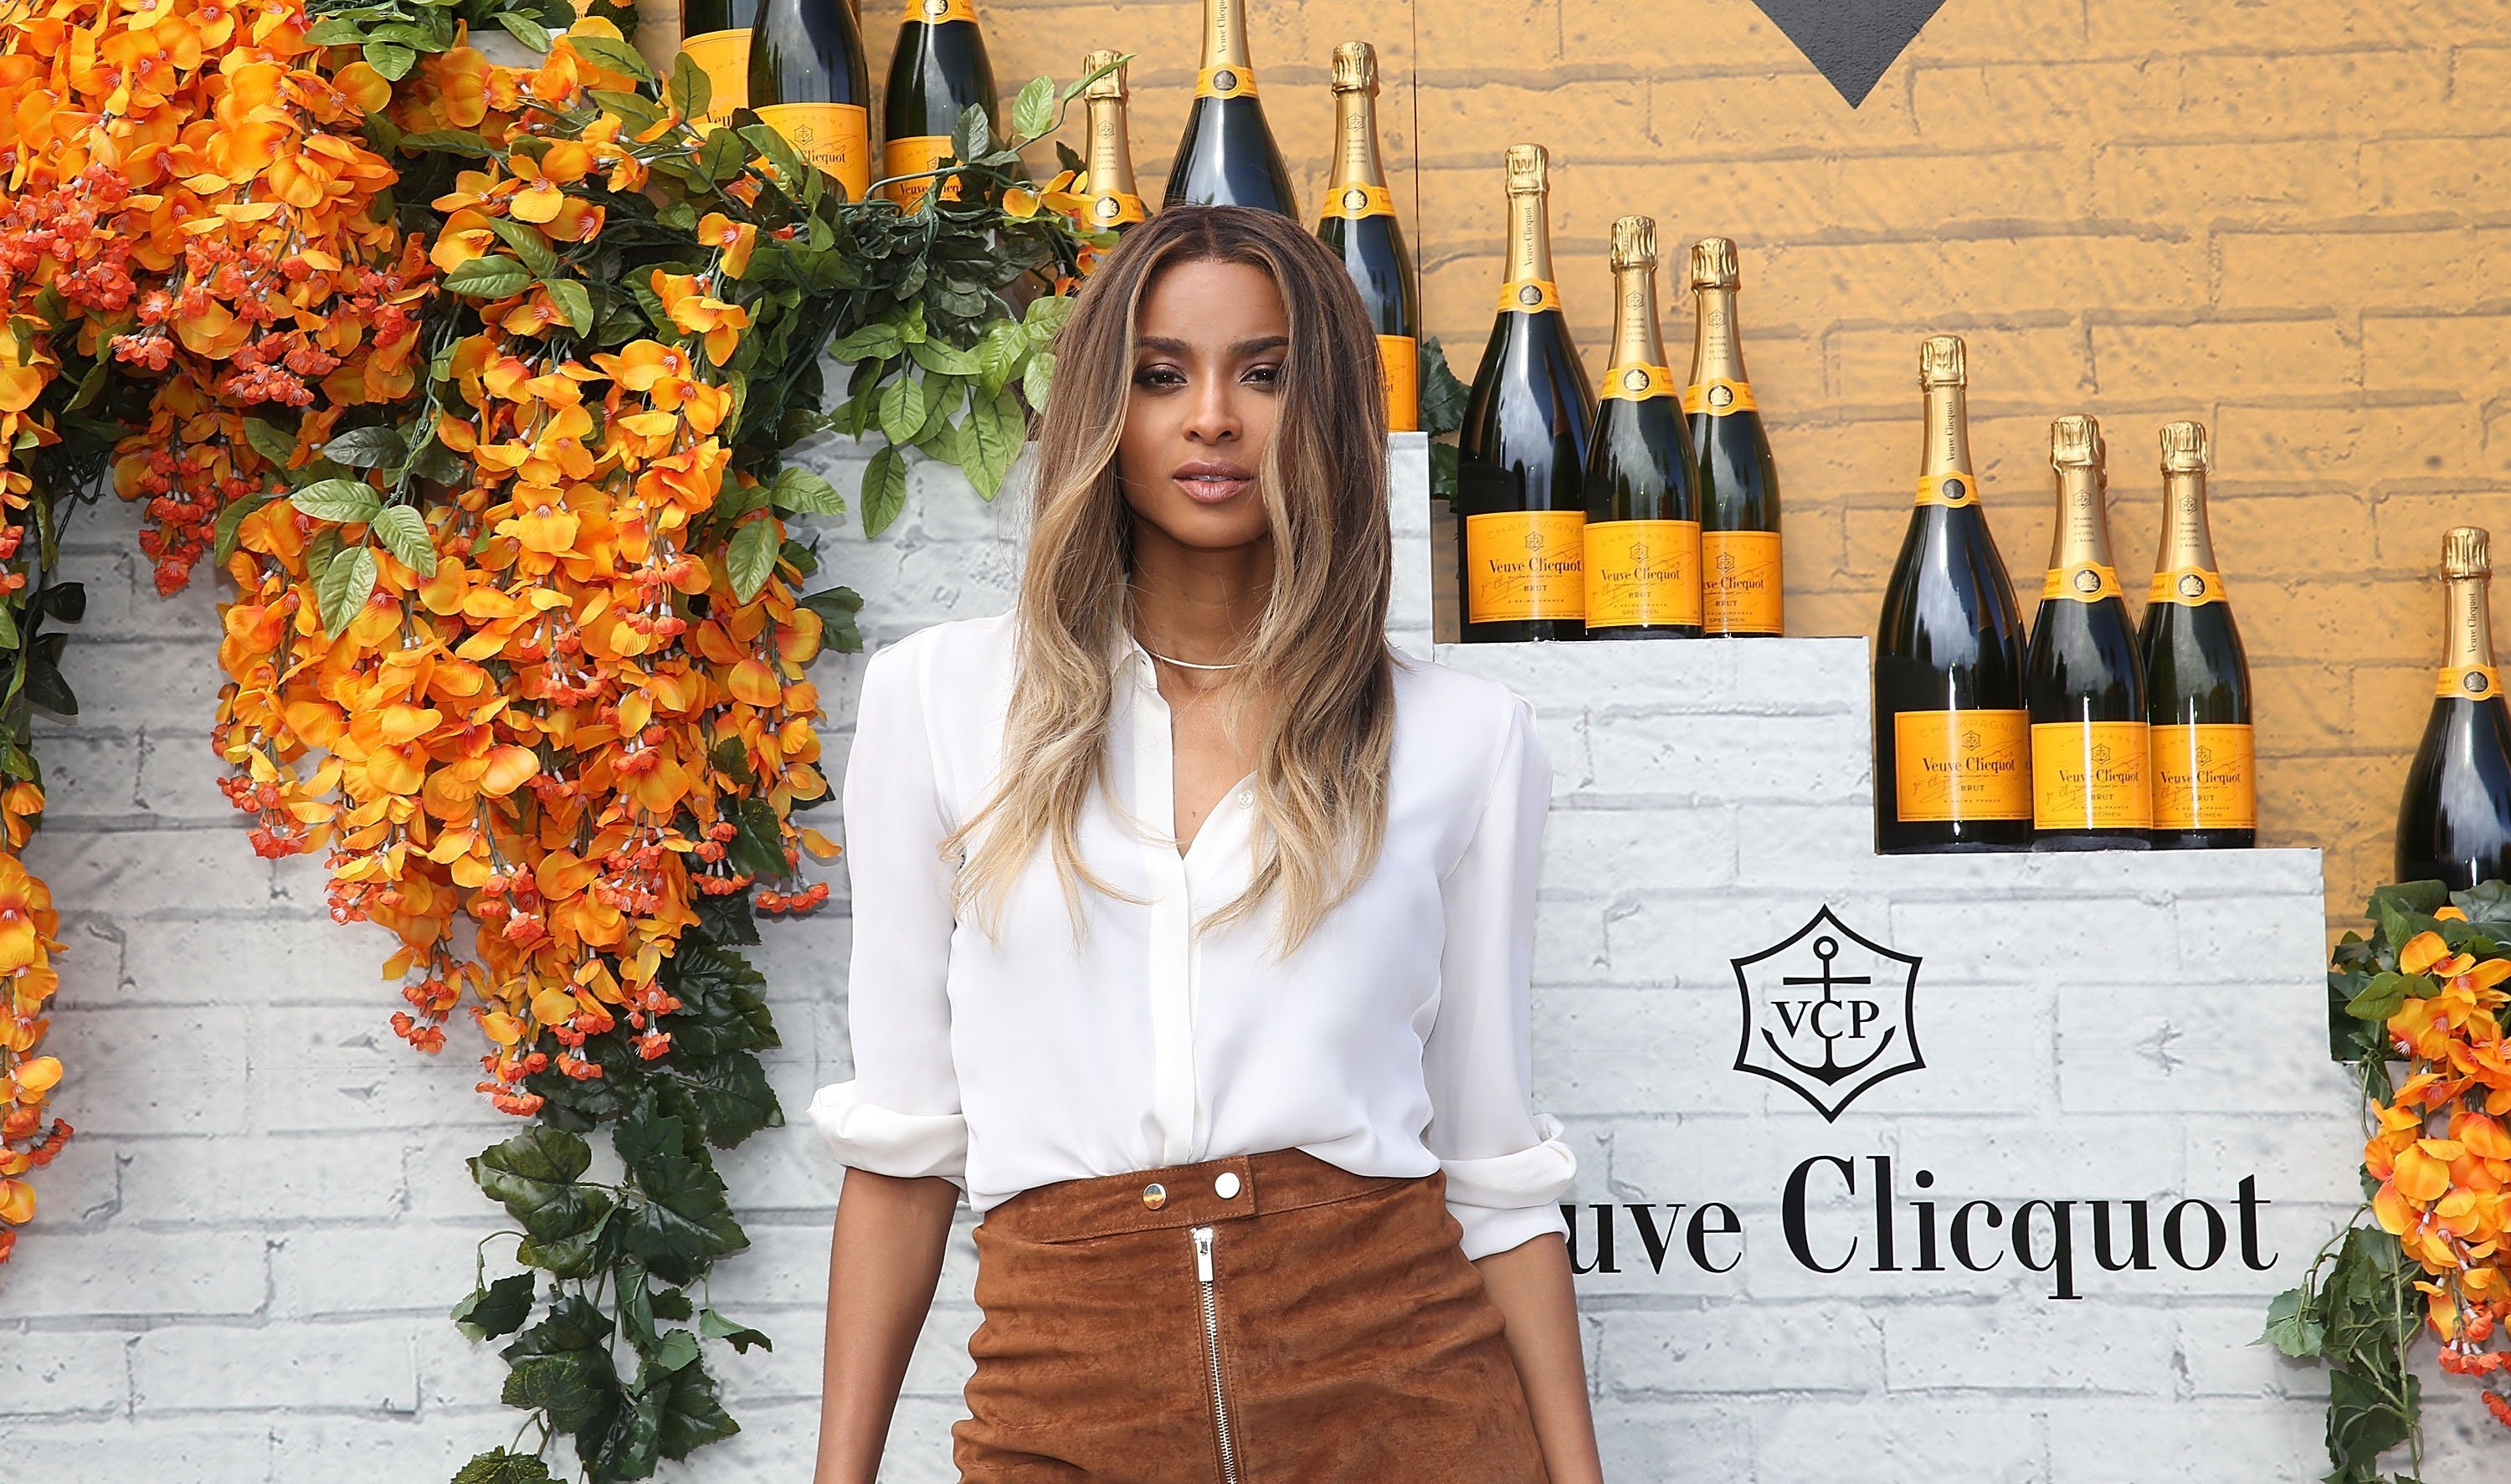 Ciara at Veuve Clicquot Hosts Second-Annual Clicquot Carnaval in Miami on Feb. 20, 2016. Photo: Getty Images